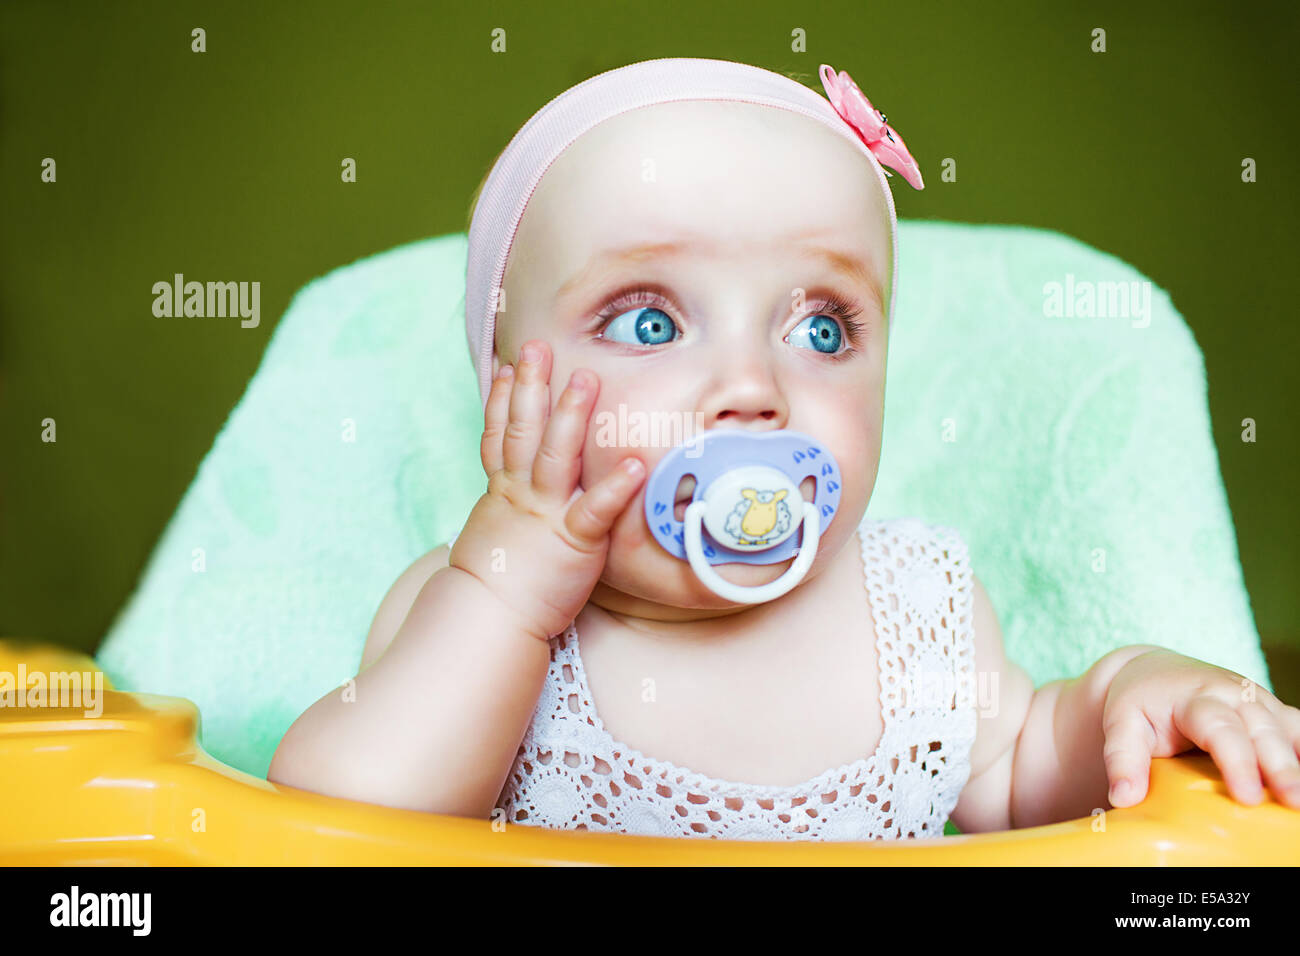 little cute child with baby's dummy in mouth - Stock Image